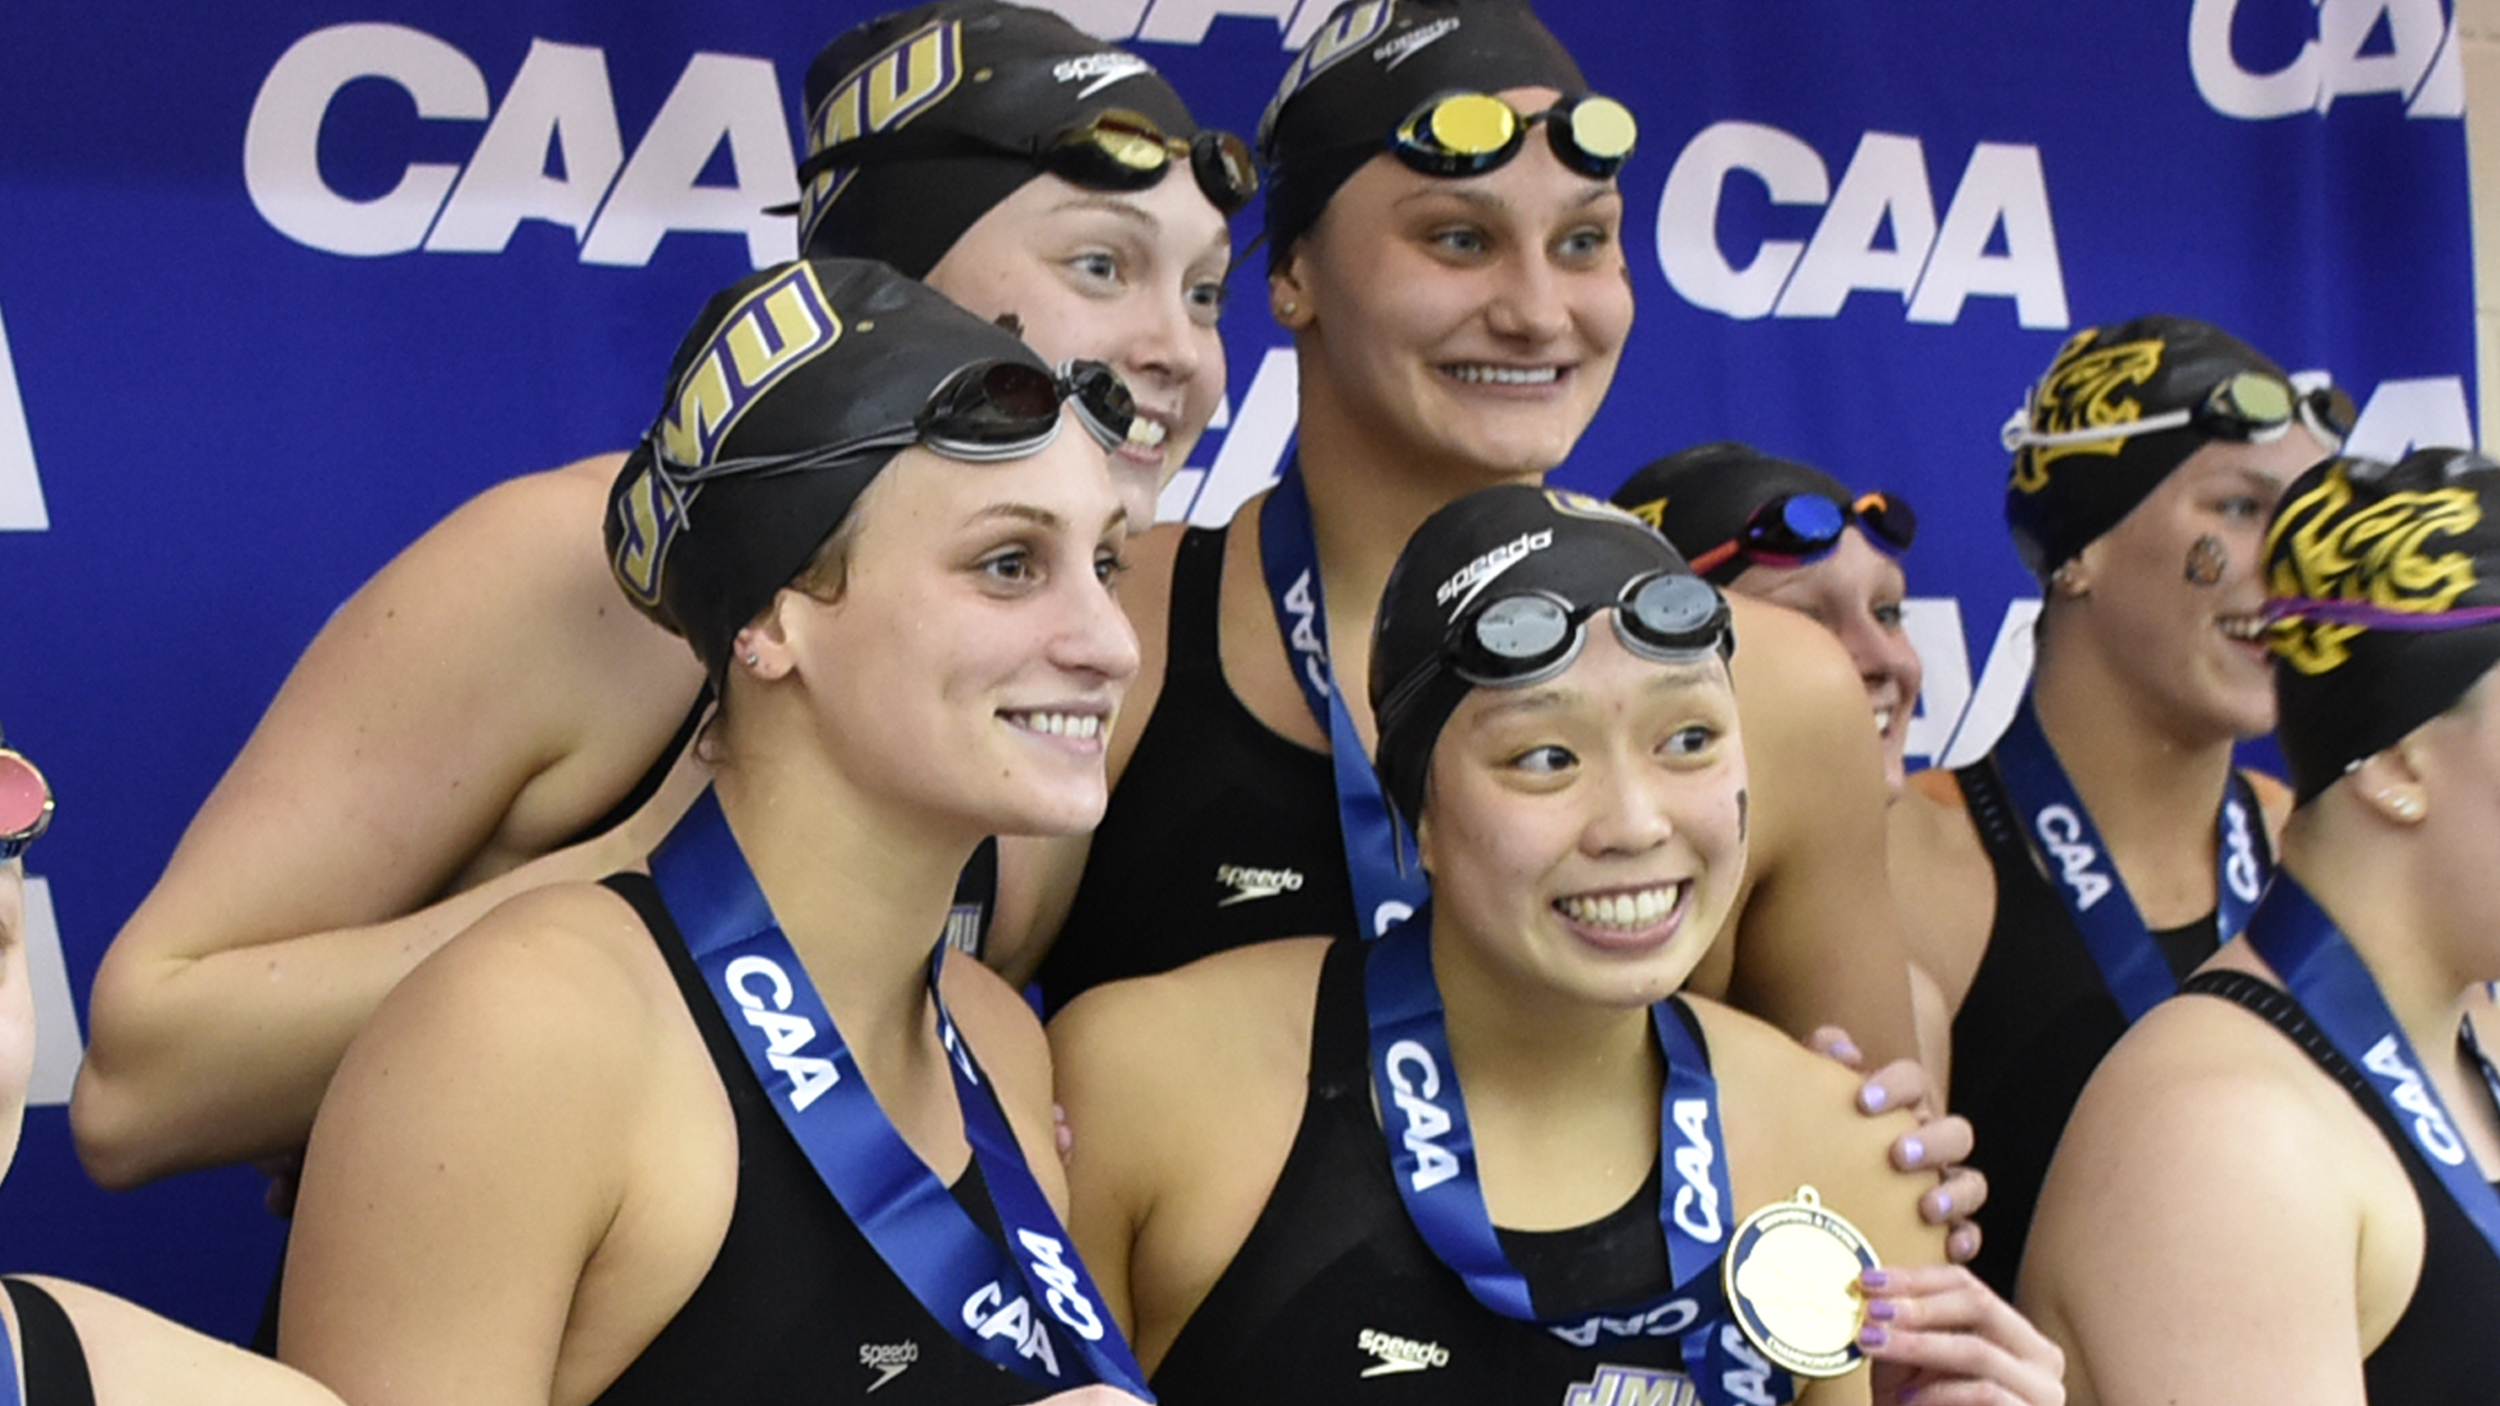 Swimming & Diving: Dukes Atop Standings After Day 1 of 2019 CAA Championships